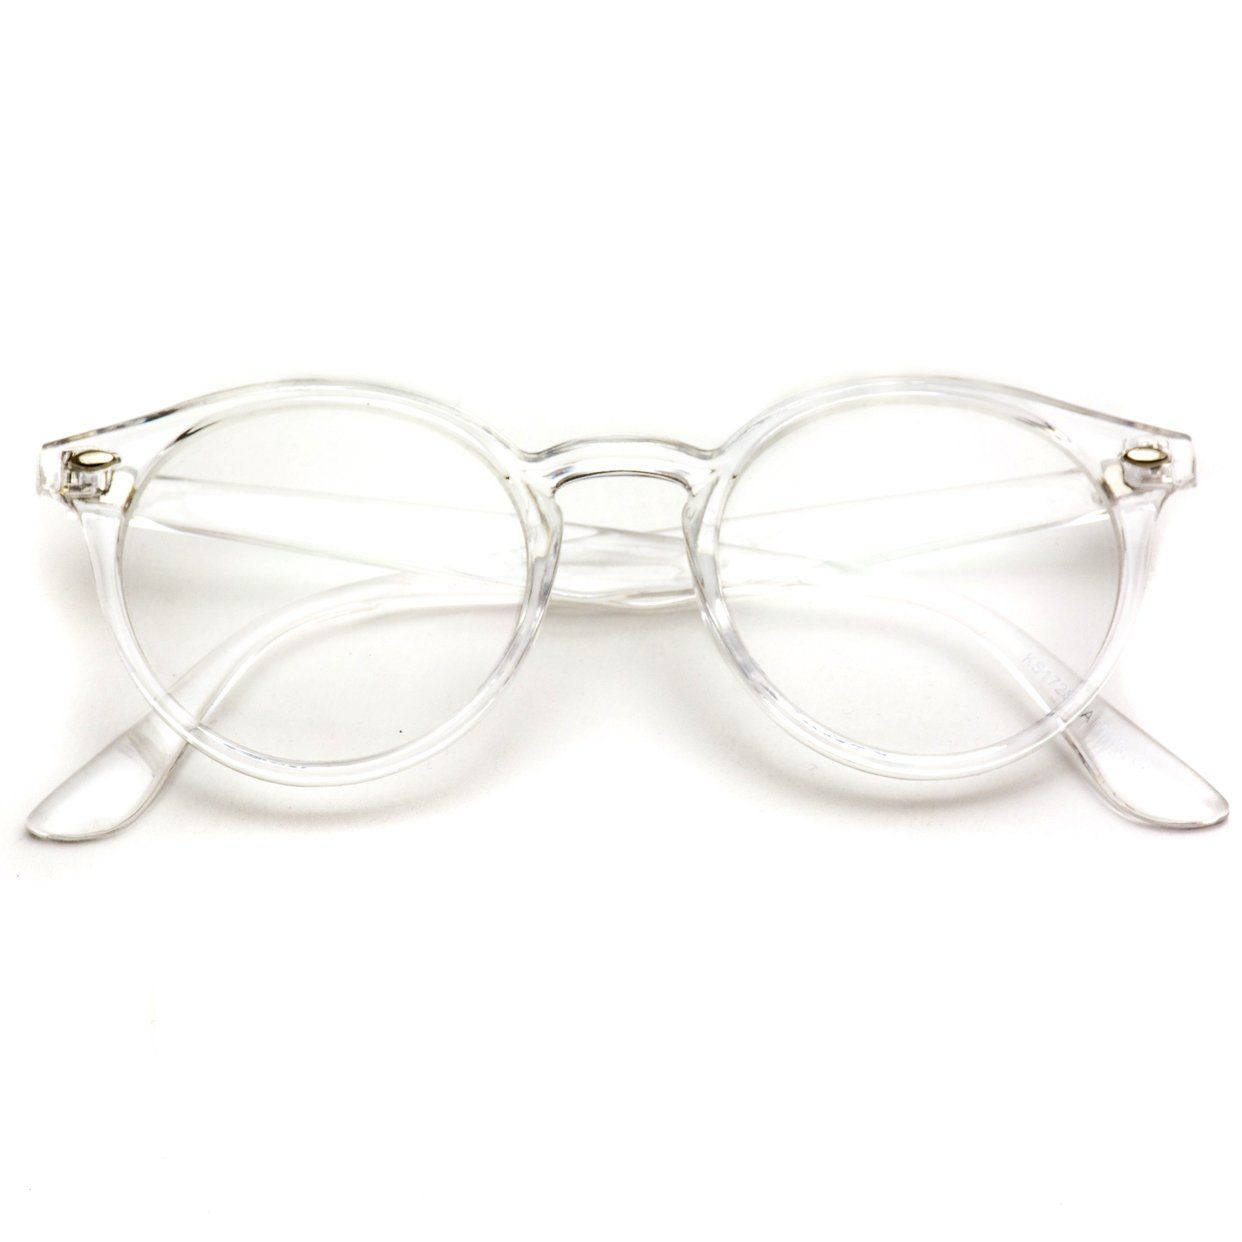 b2545f72c3f9 Ainsley Transparent Round Clear Frame Glasses - Clear Optical ...